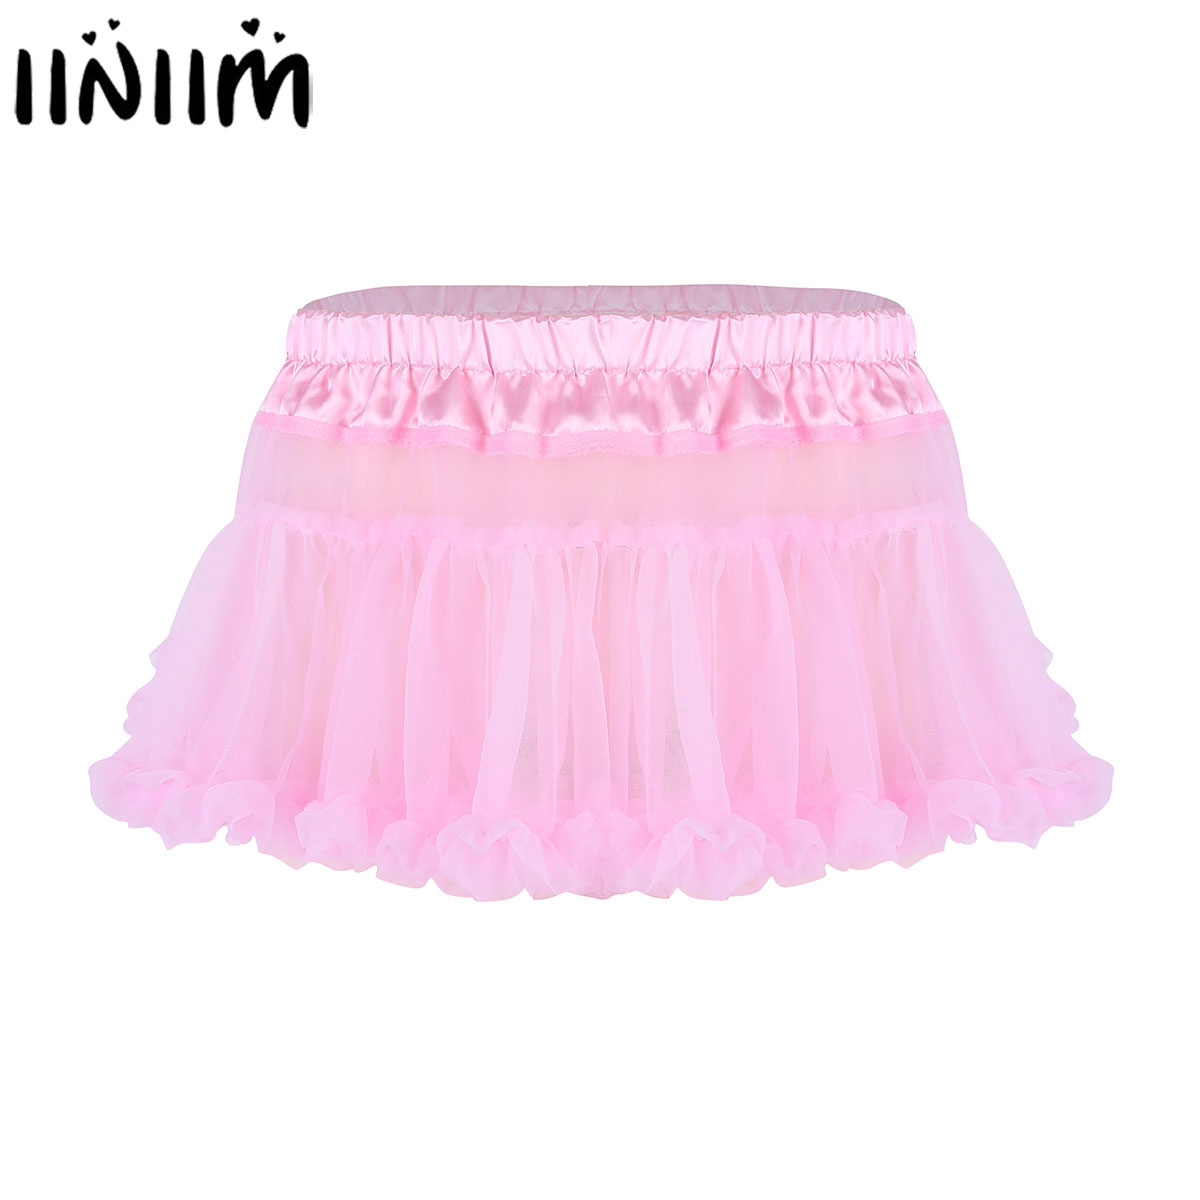 iiniim Mens Sissy Lingerie Panties Satin Elastic Waistband Frilly Ruffled Tulle Layered Skirt Short Babydolls Mini Tutu Skirts(China)